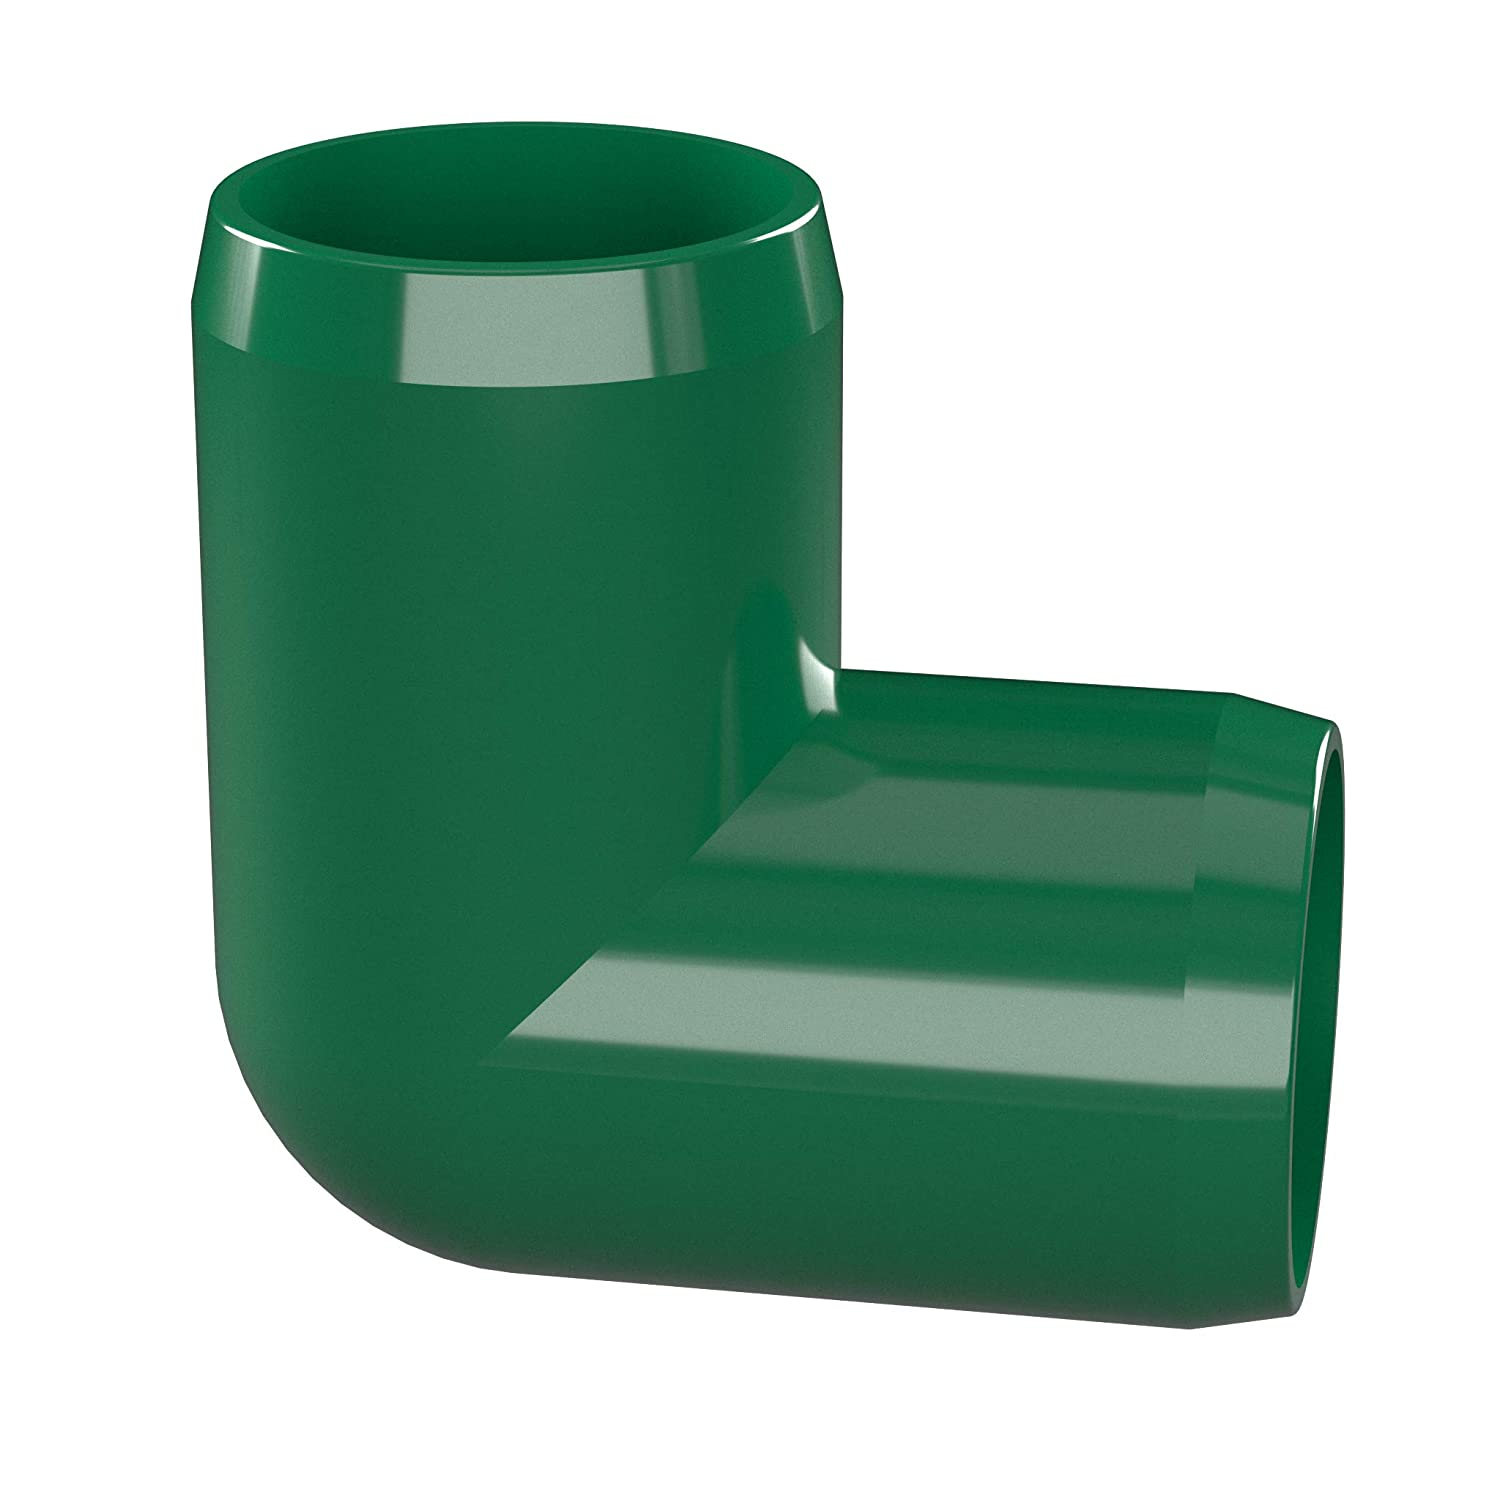 Furniture Grade Green 1 Size FORMUFIT F00190E-GR-4 90 Degree Elbow PVC Fitting Pack of 4